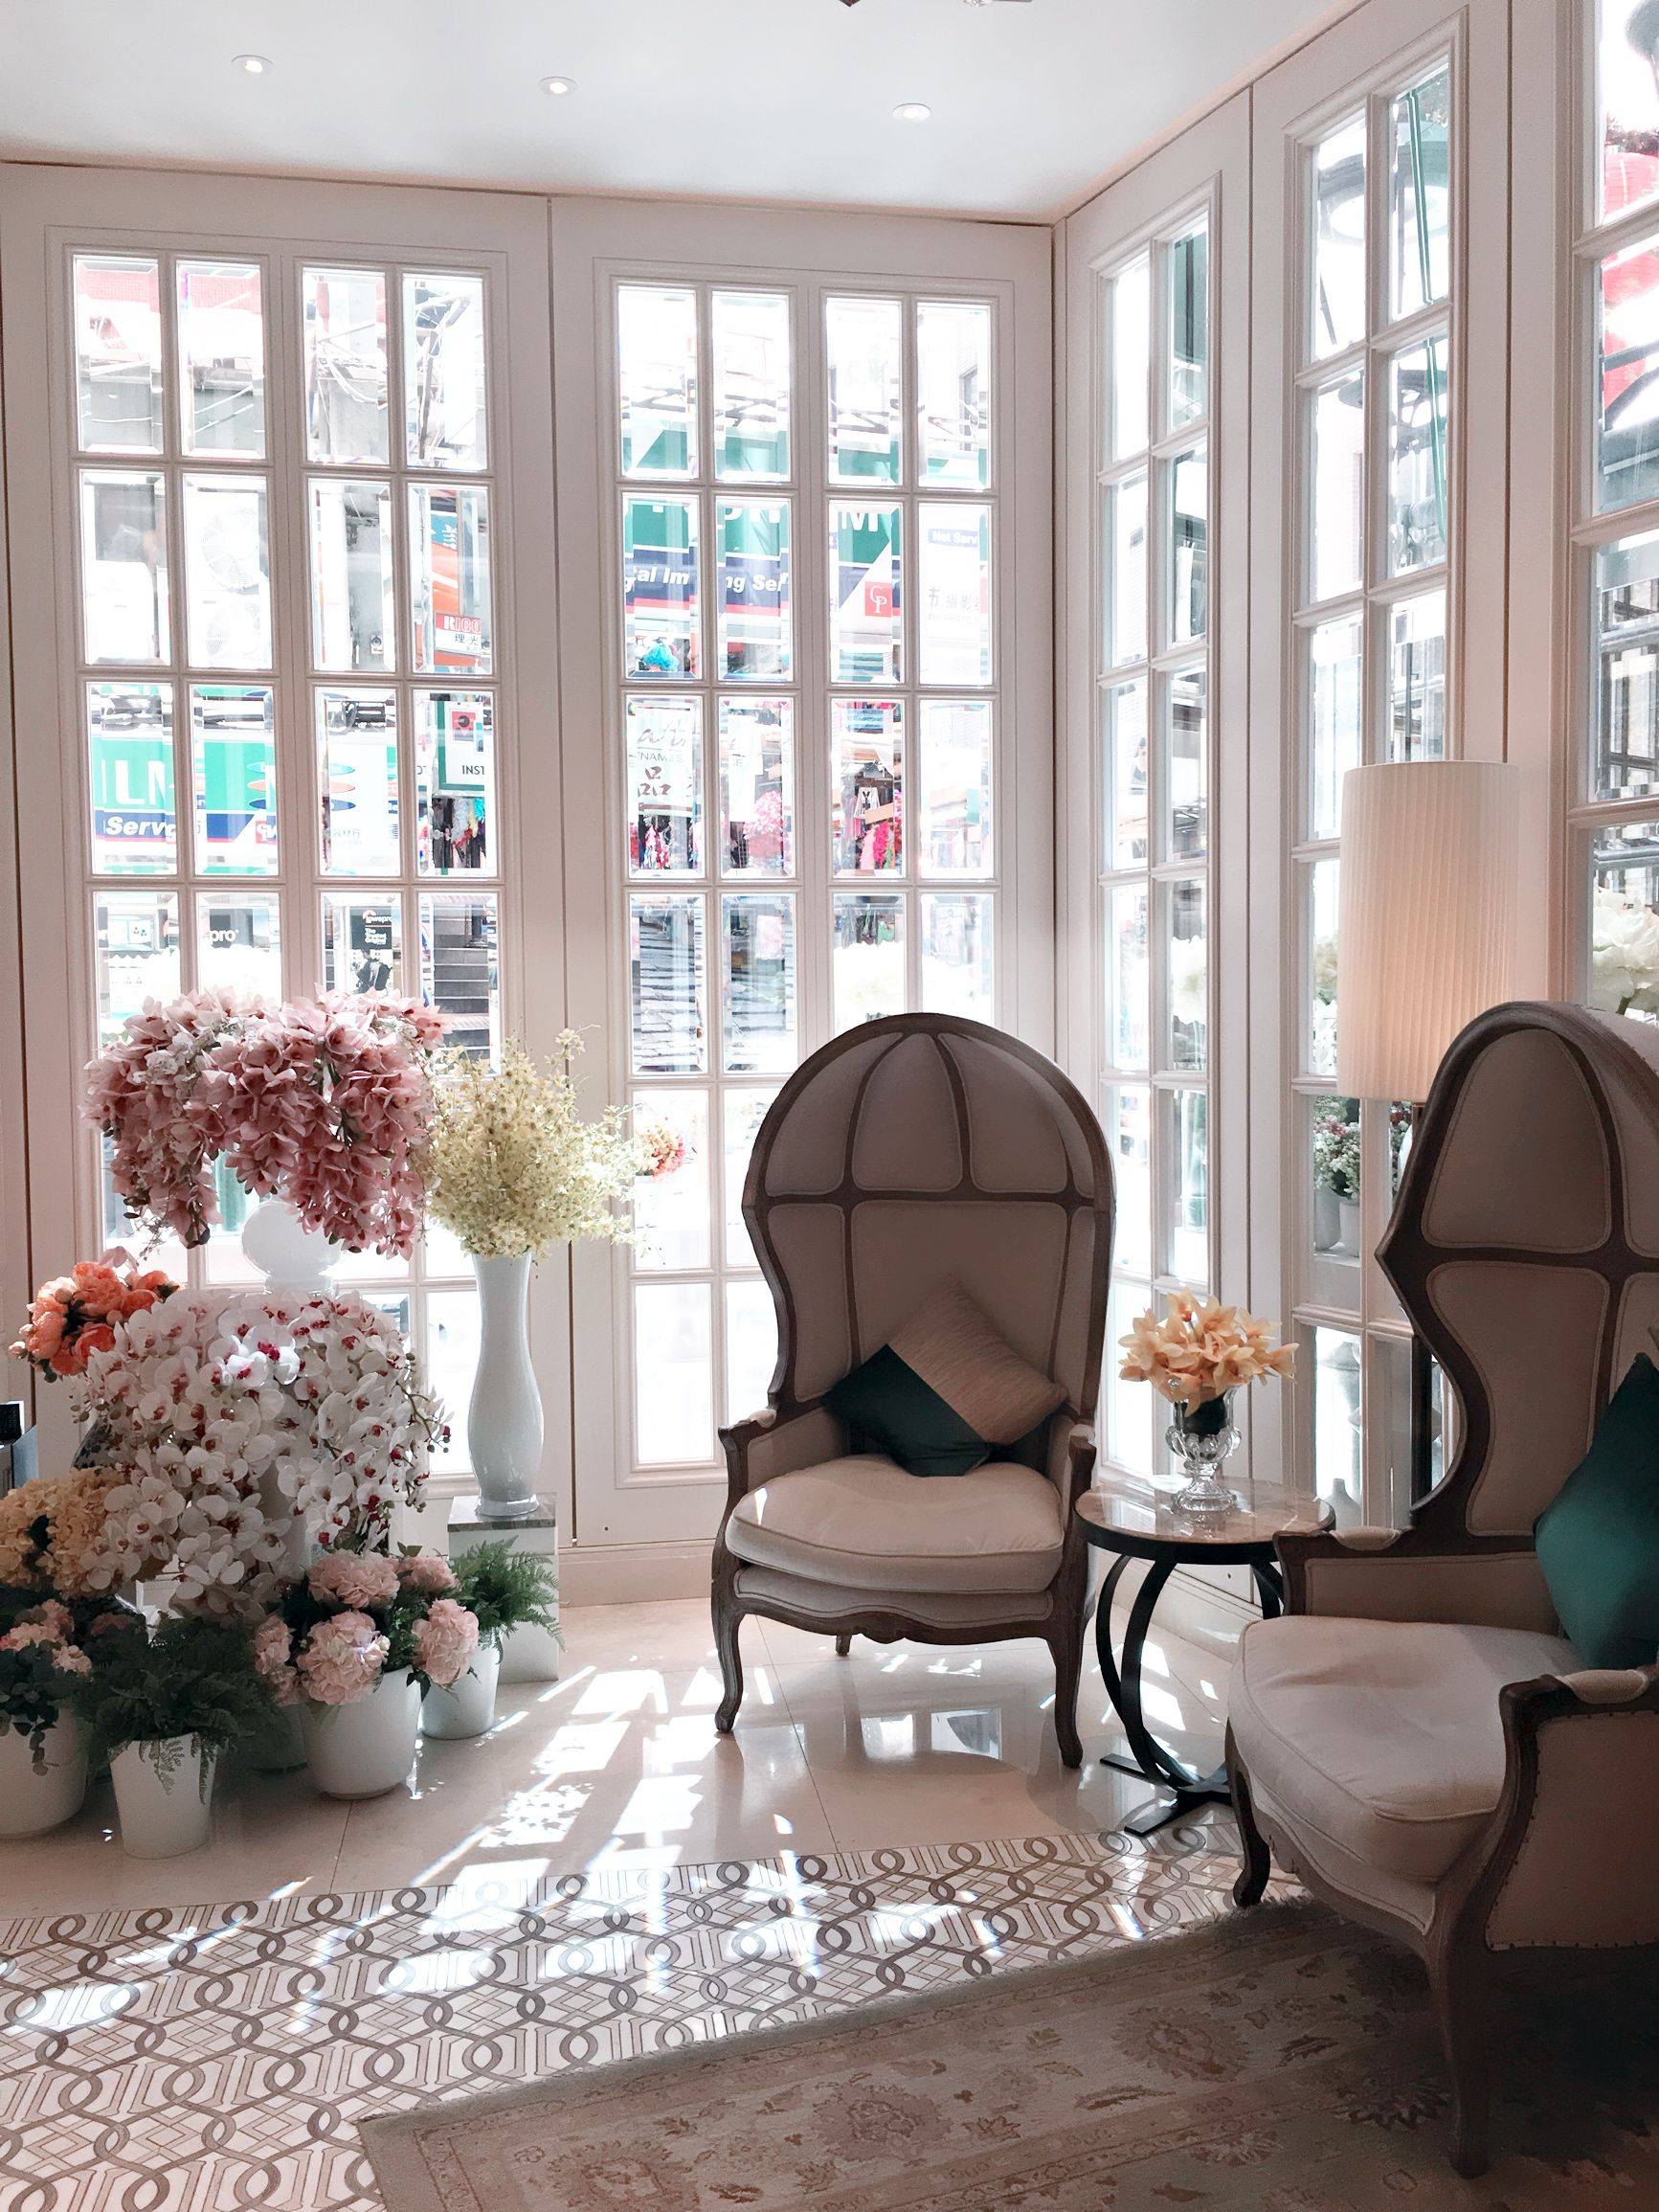 Weekend Guide To Hong Kong To Do Hotel The Pottinger Home Decor Decor Home